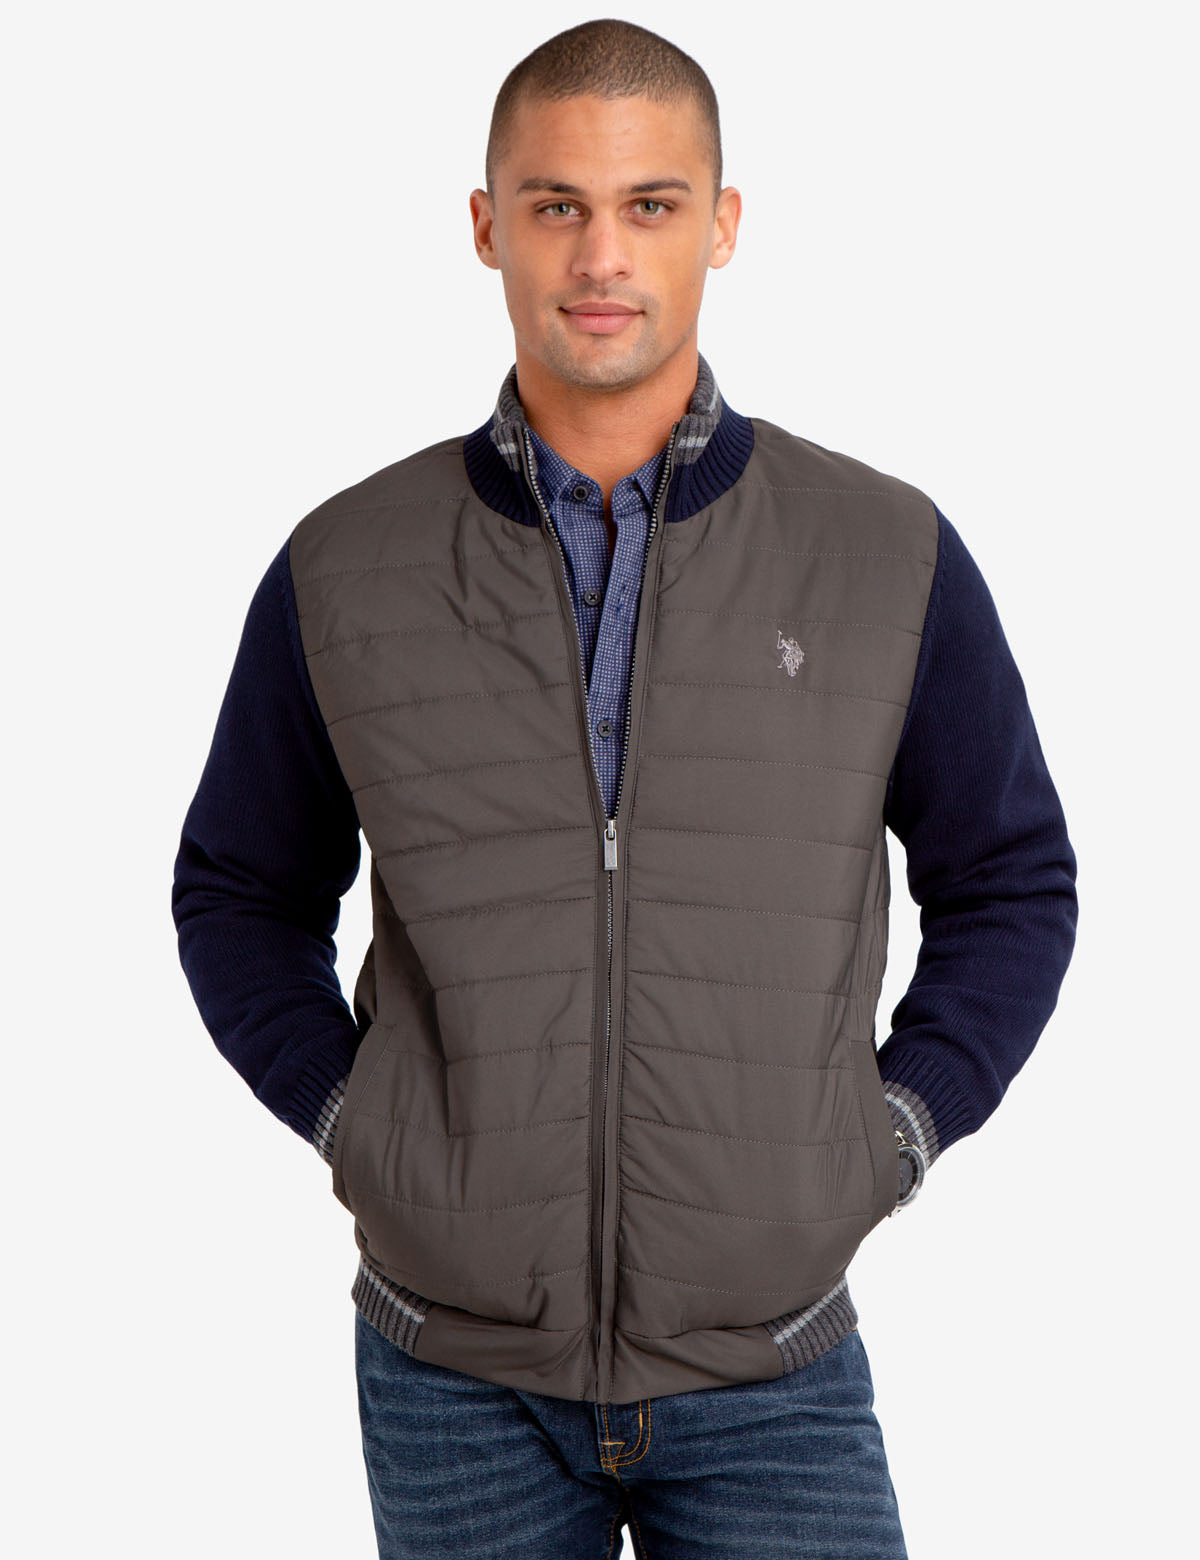 SWEATER JACKET - U.S. Polo Assn.